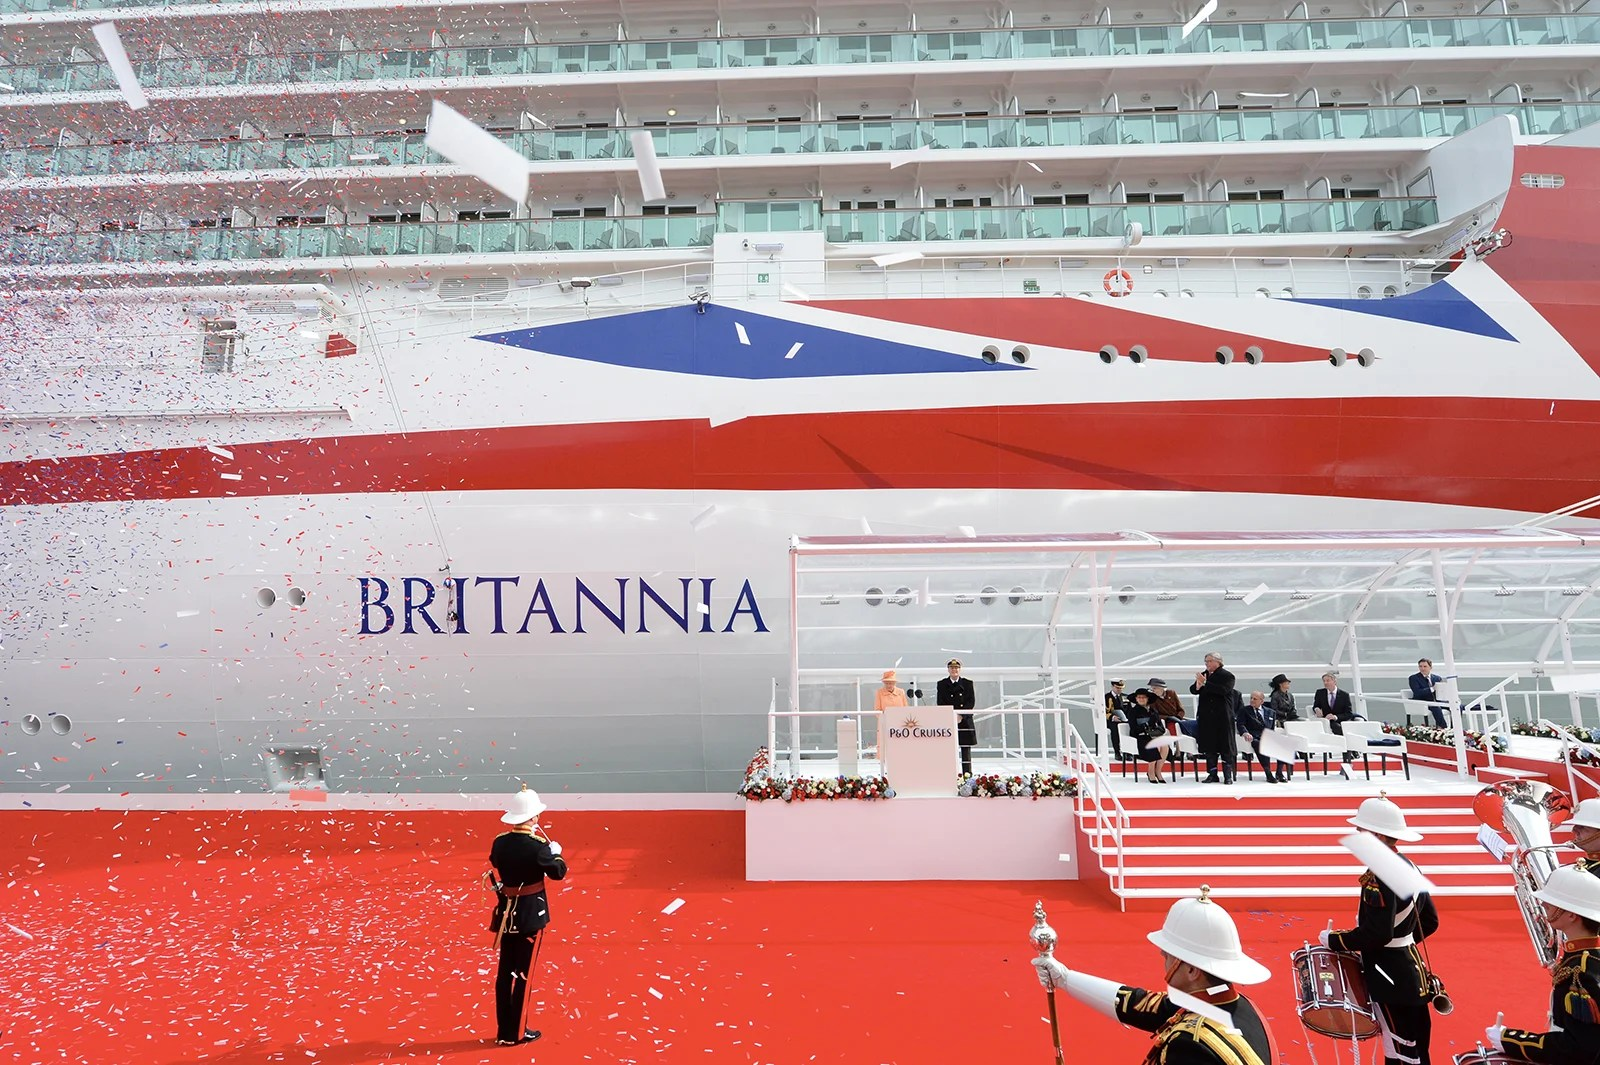 HM the Queen attends the opening of Britannia, P&O UK's largest ever ship built for the UK market on March 10 2015 in United Kingdom. (Photo by James D. Morgan/Getty Images)